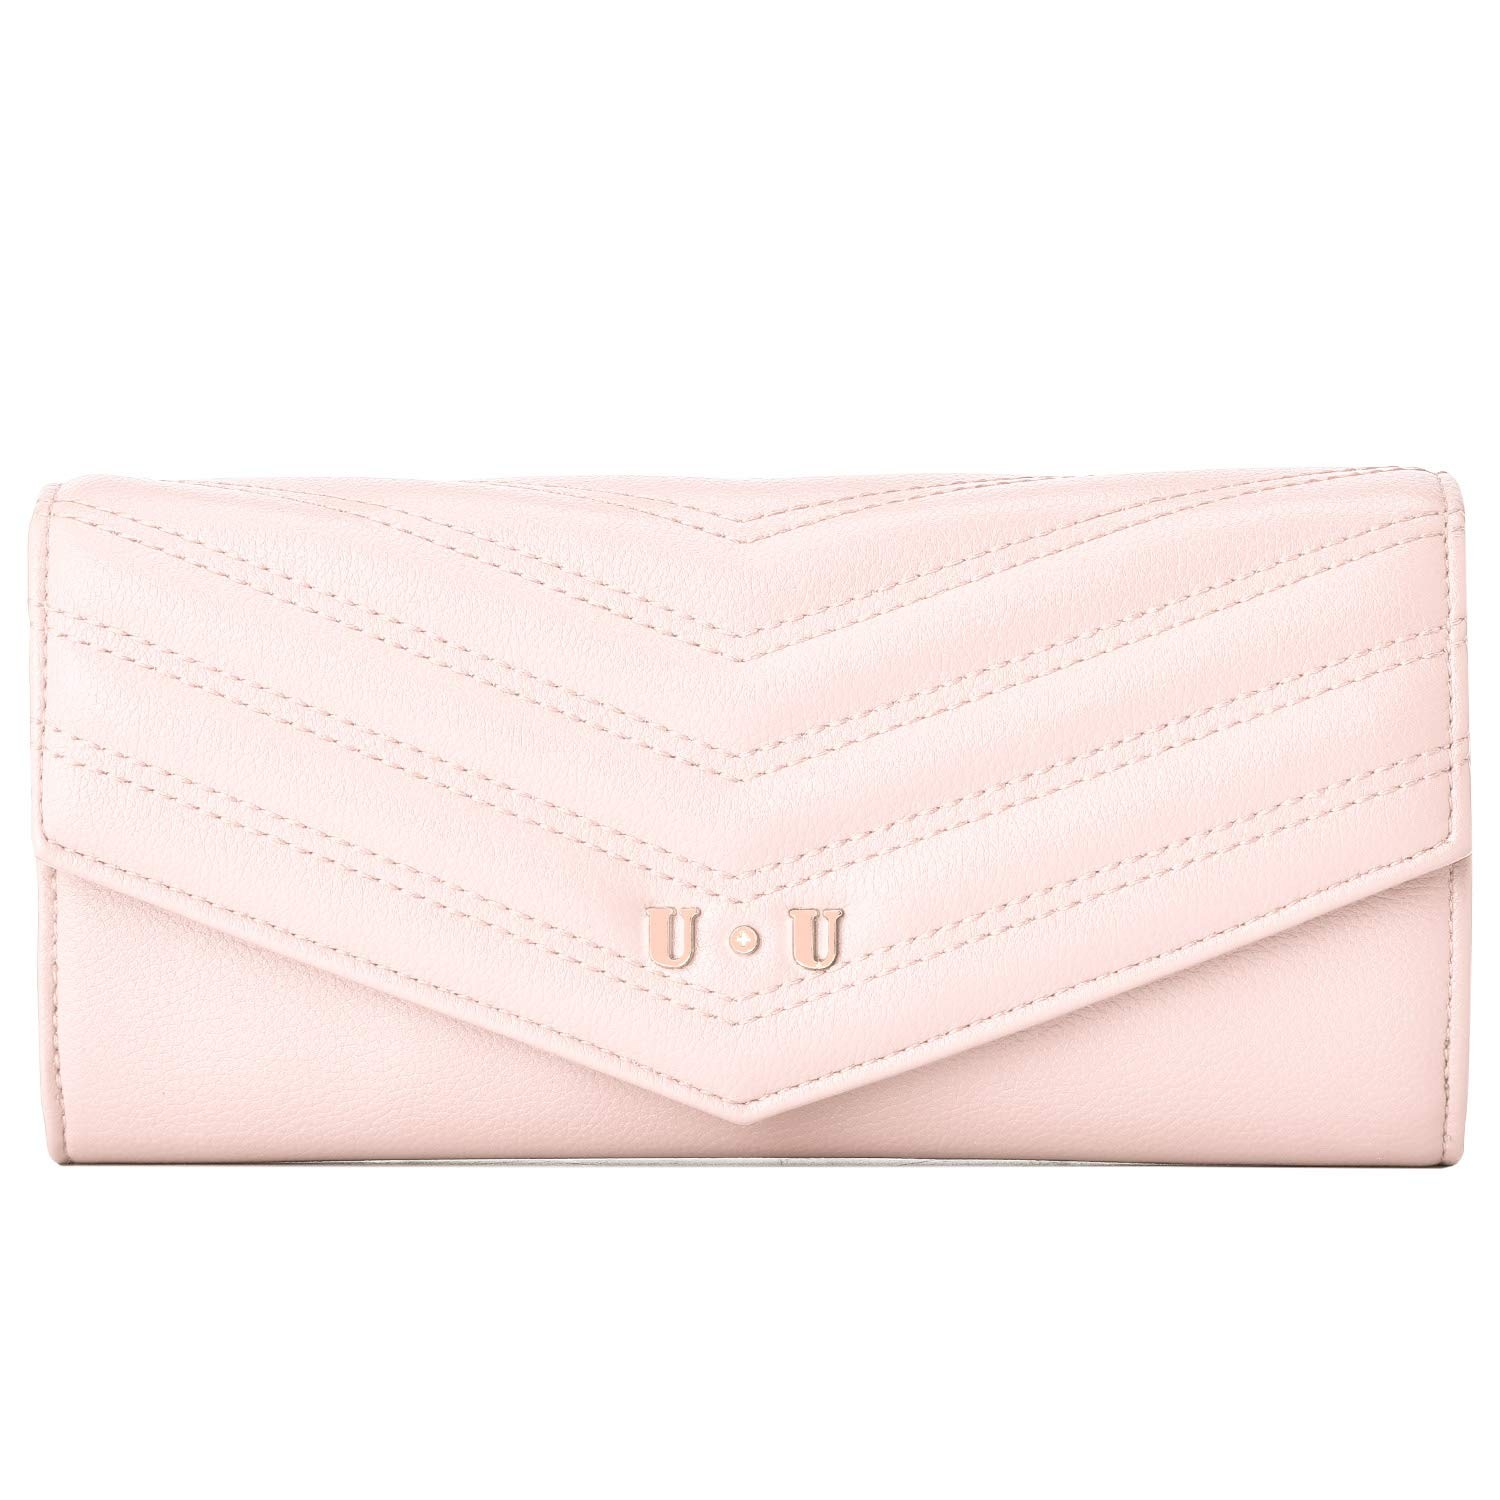 Chevron Flap Wallet - Assorted Colors